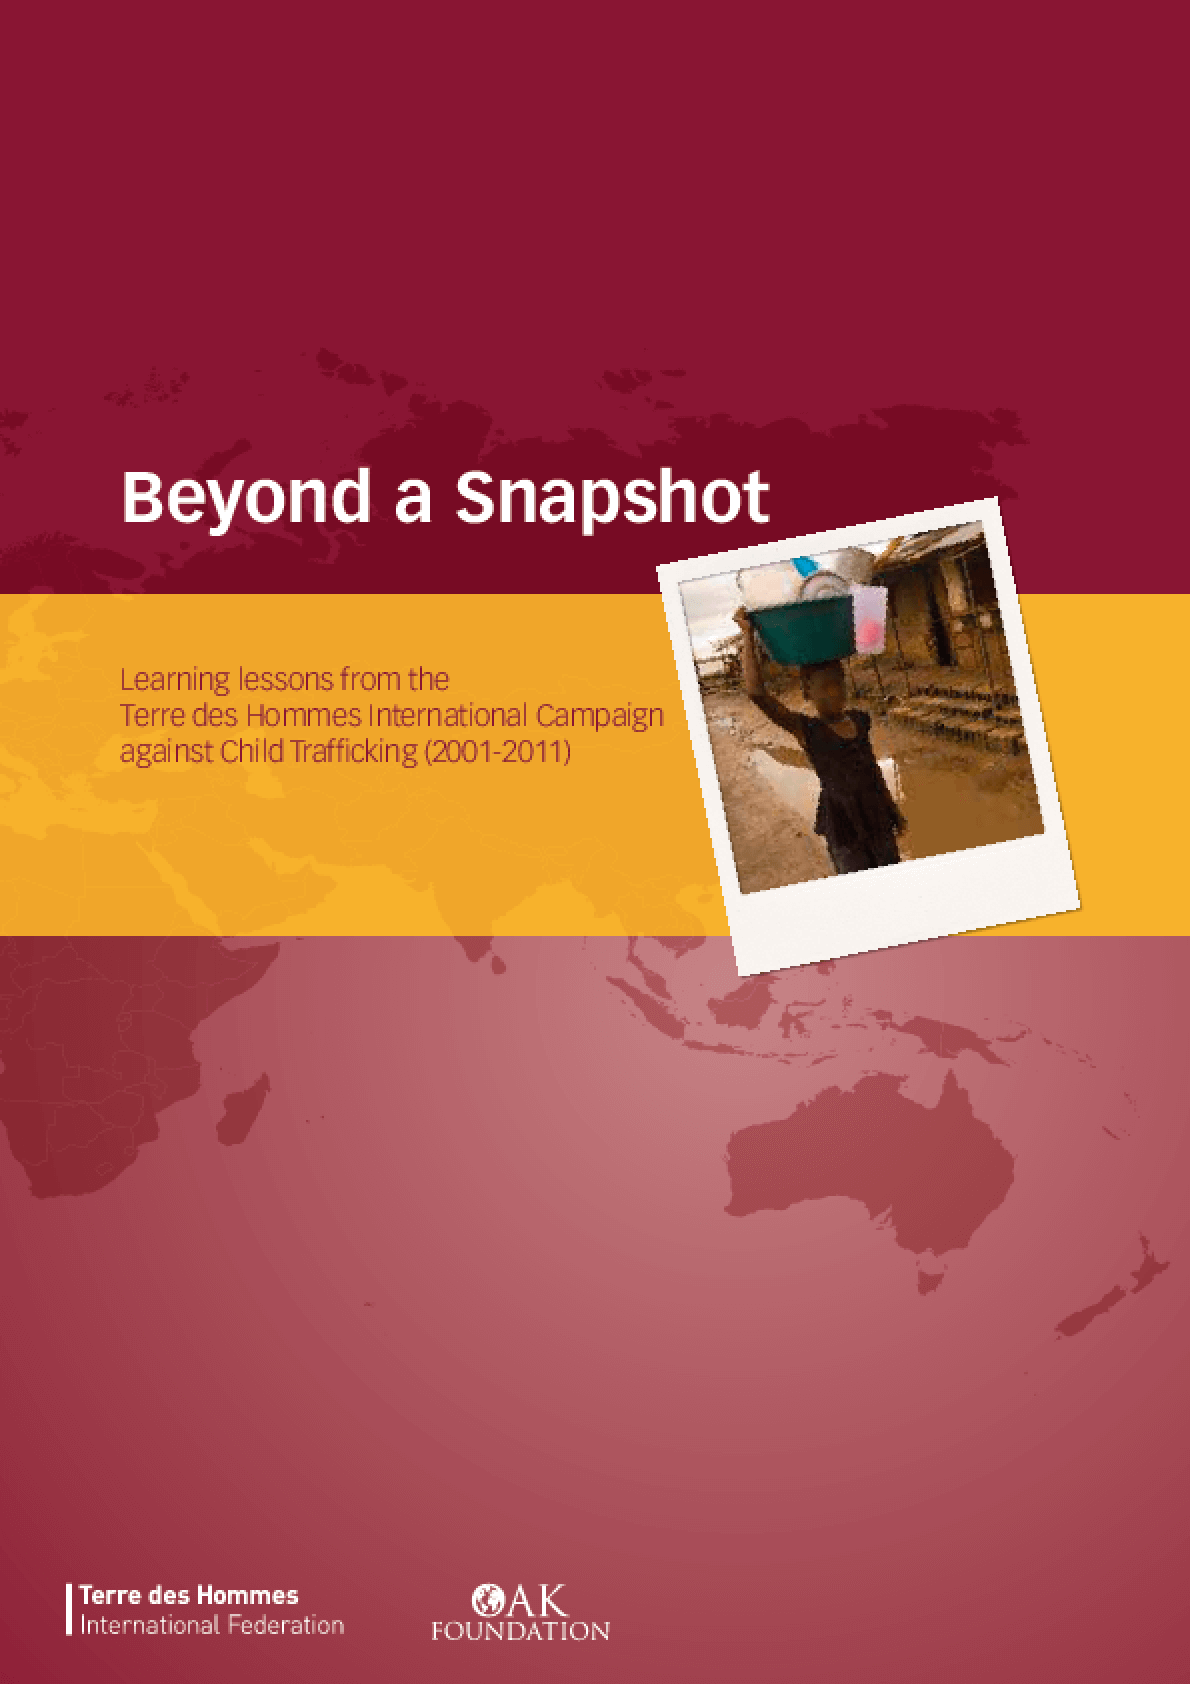 Beyond a Snapshot: Learning lessons from the Terre des Hommes International Campaign against Child Trafficking (2001-2011)